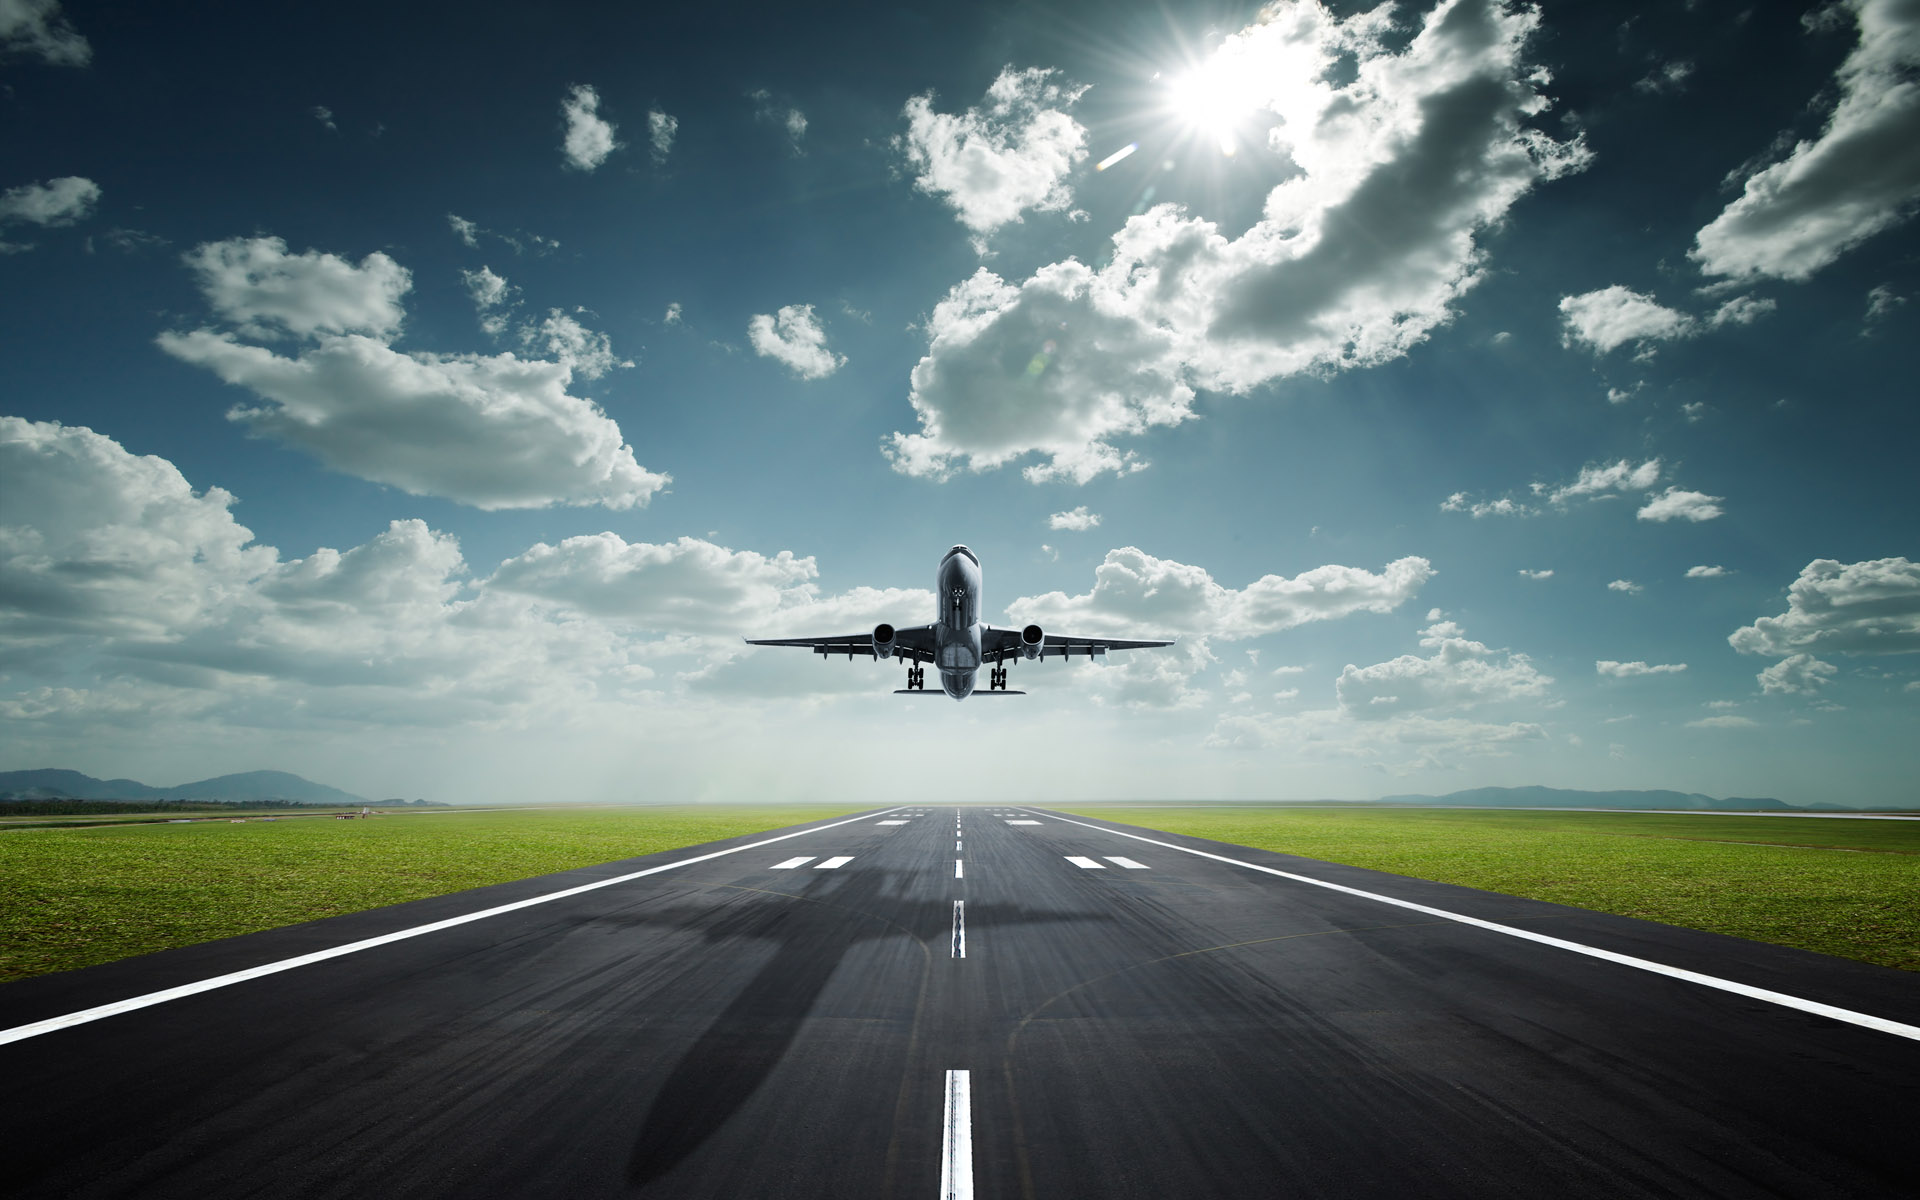 airplane-landing-wallpaper-background-5